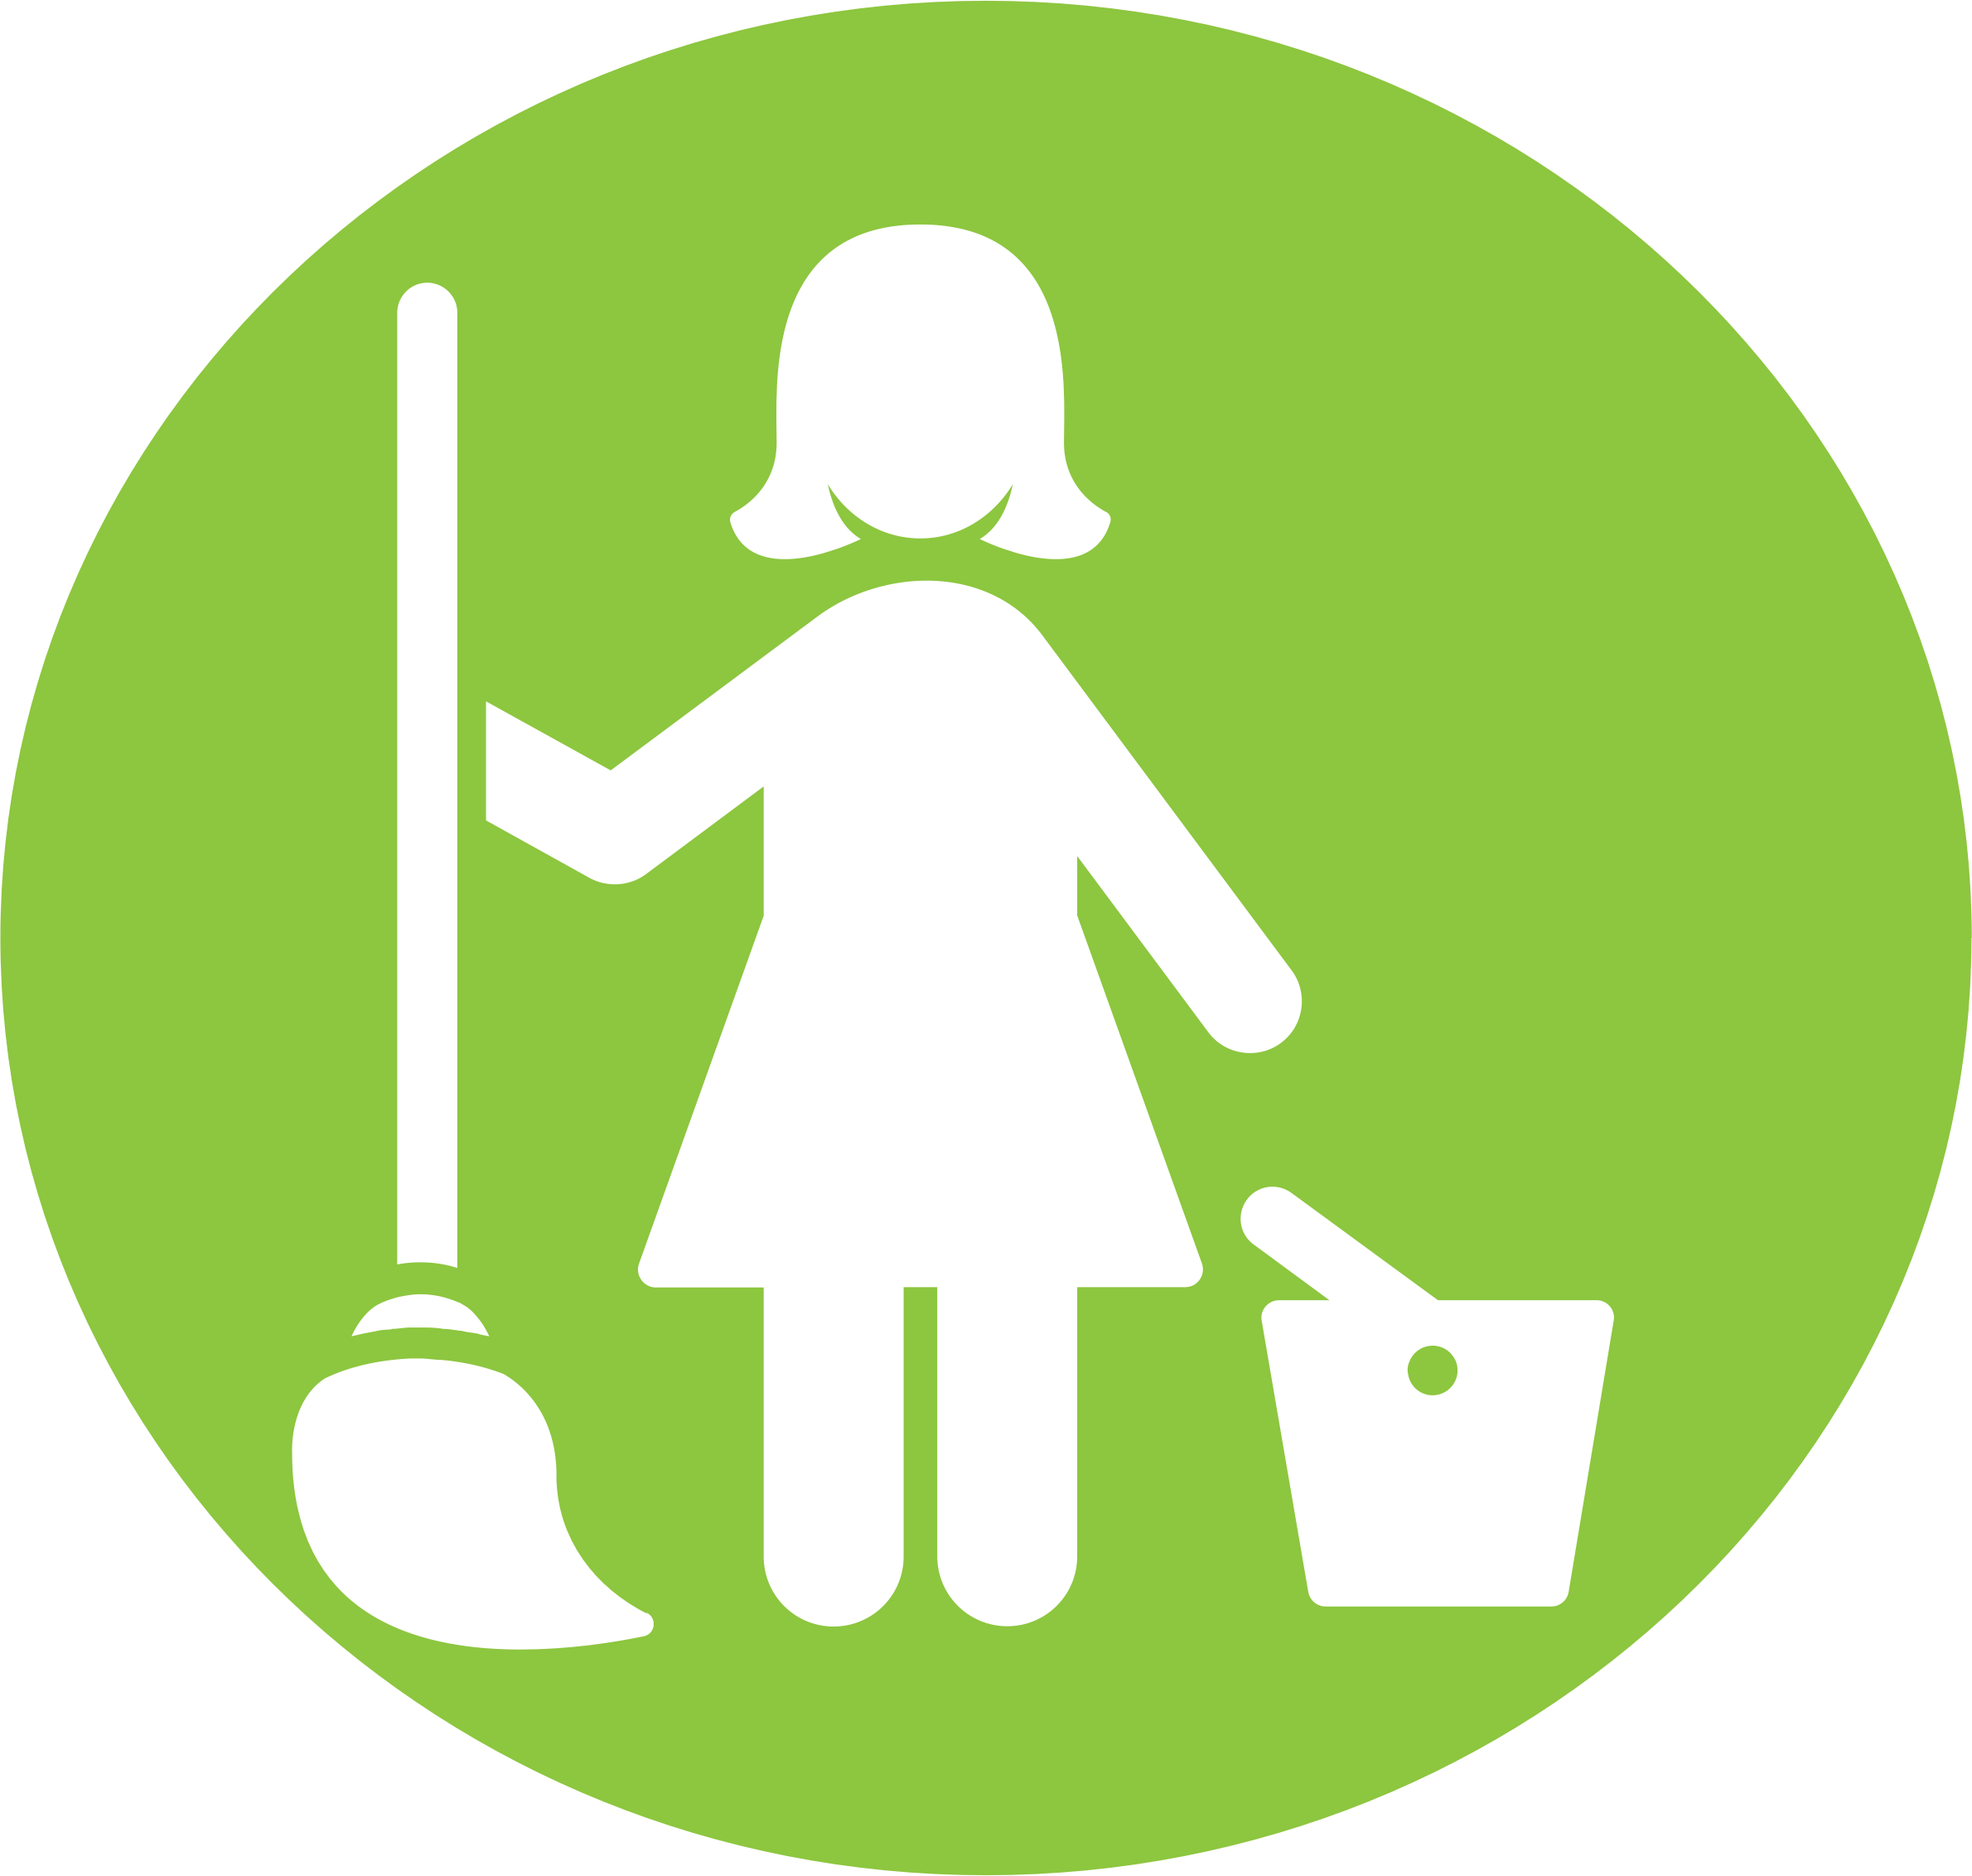 Maid clipart icon. Pictogram big image png